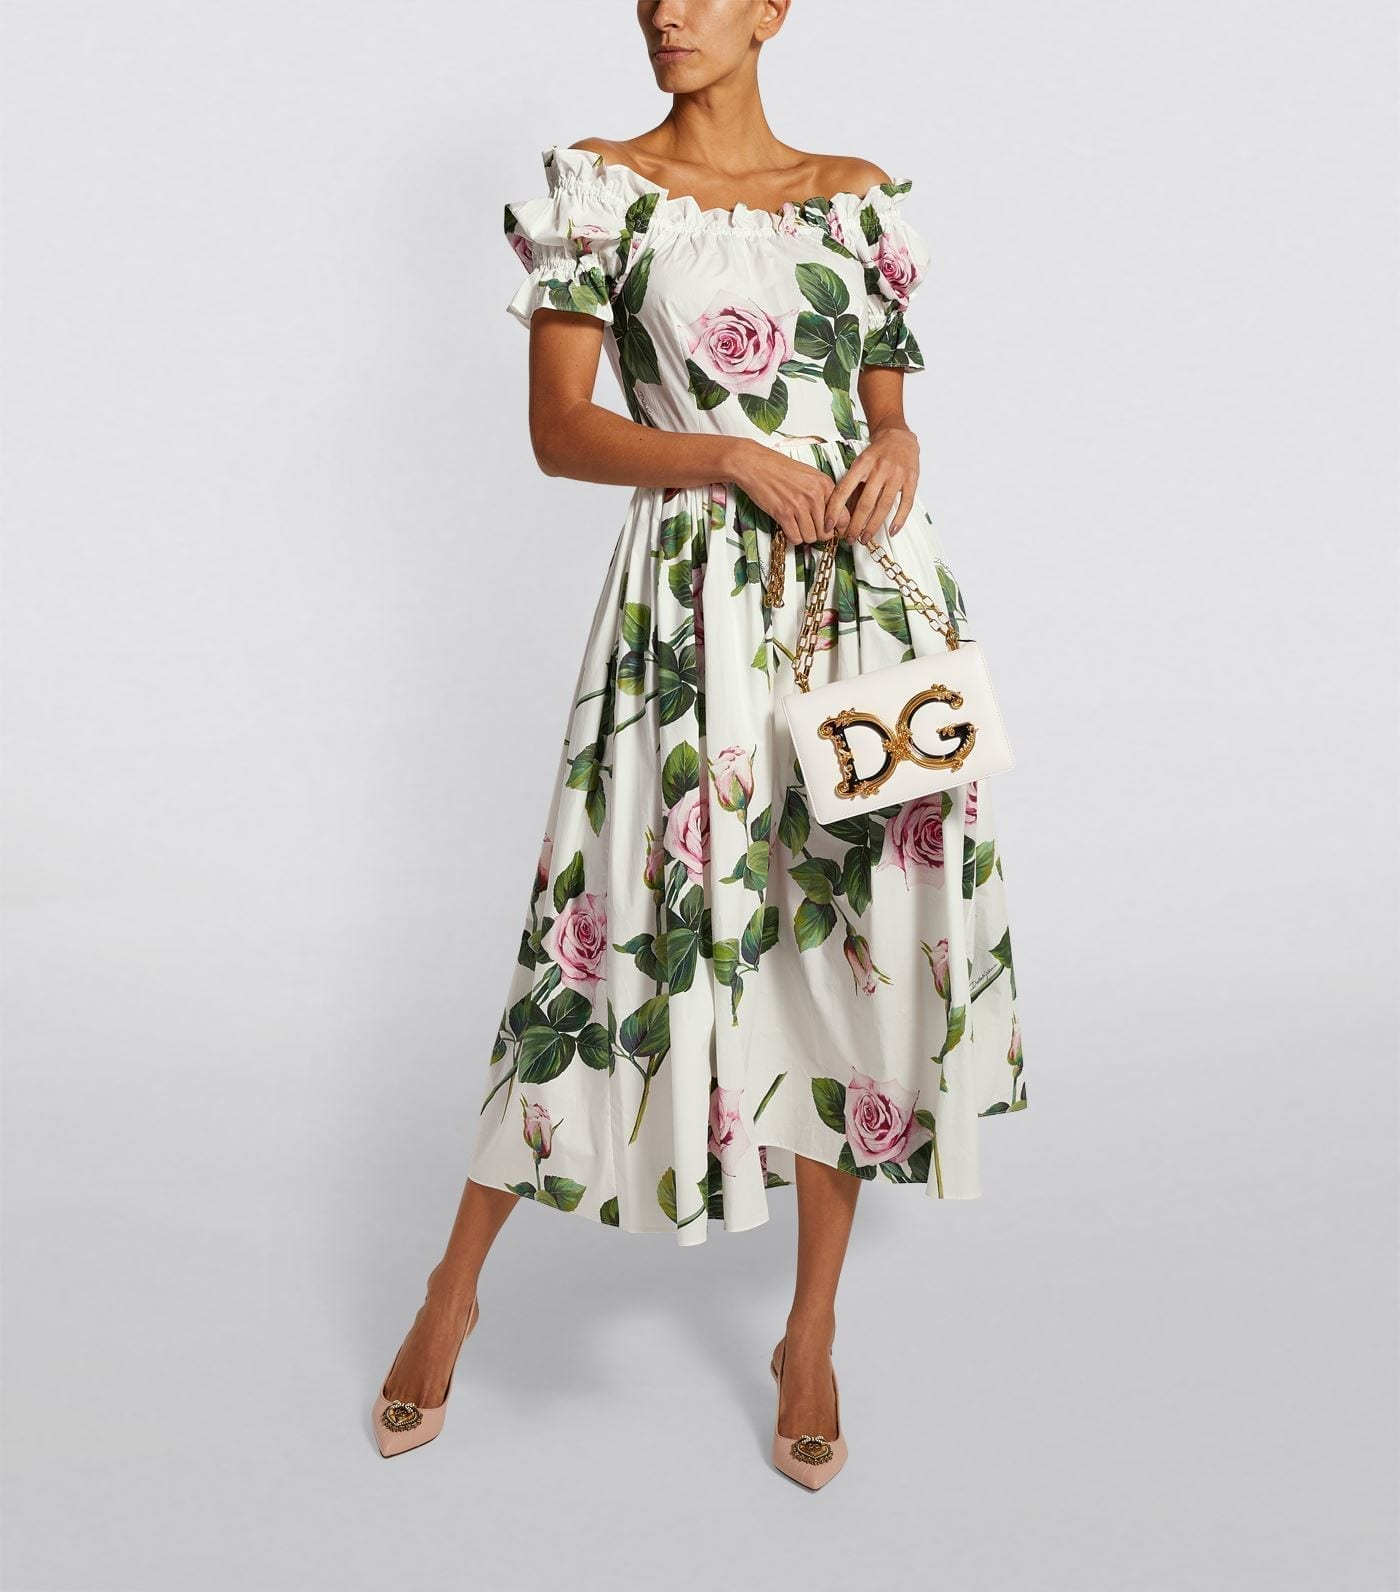 DOLCE & GABBANA Tropical Rose Print Ruffle Dress